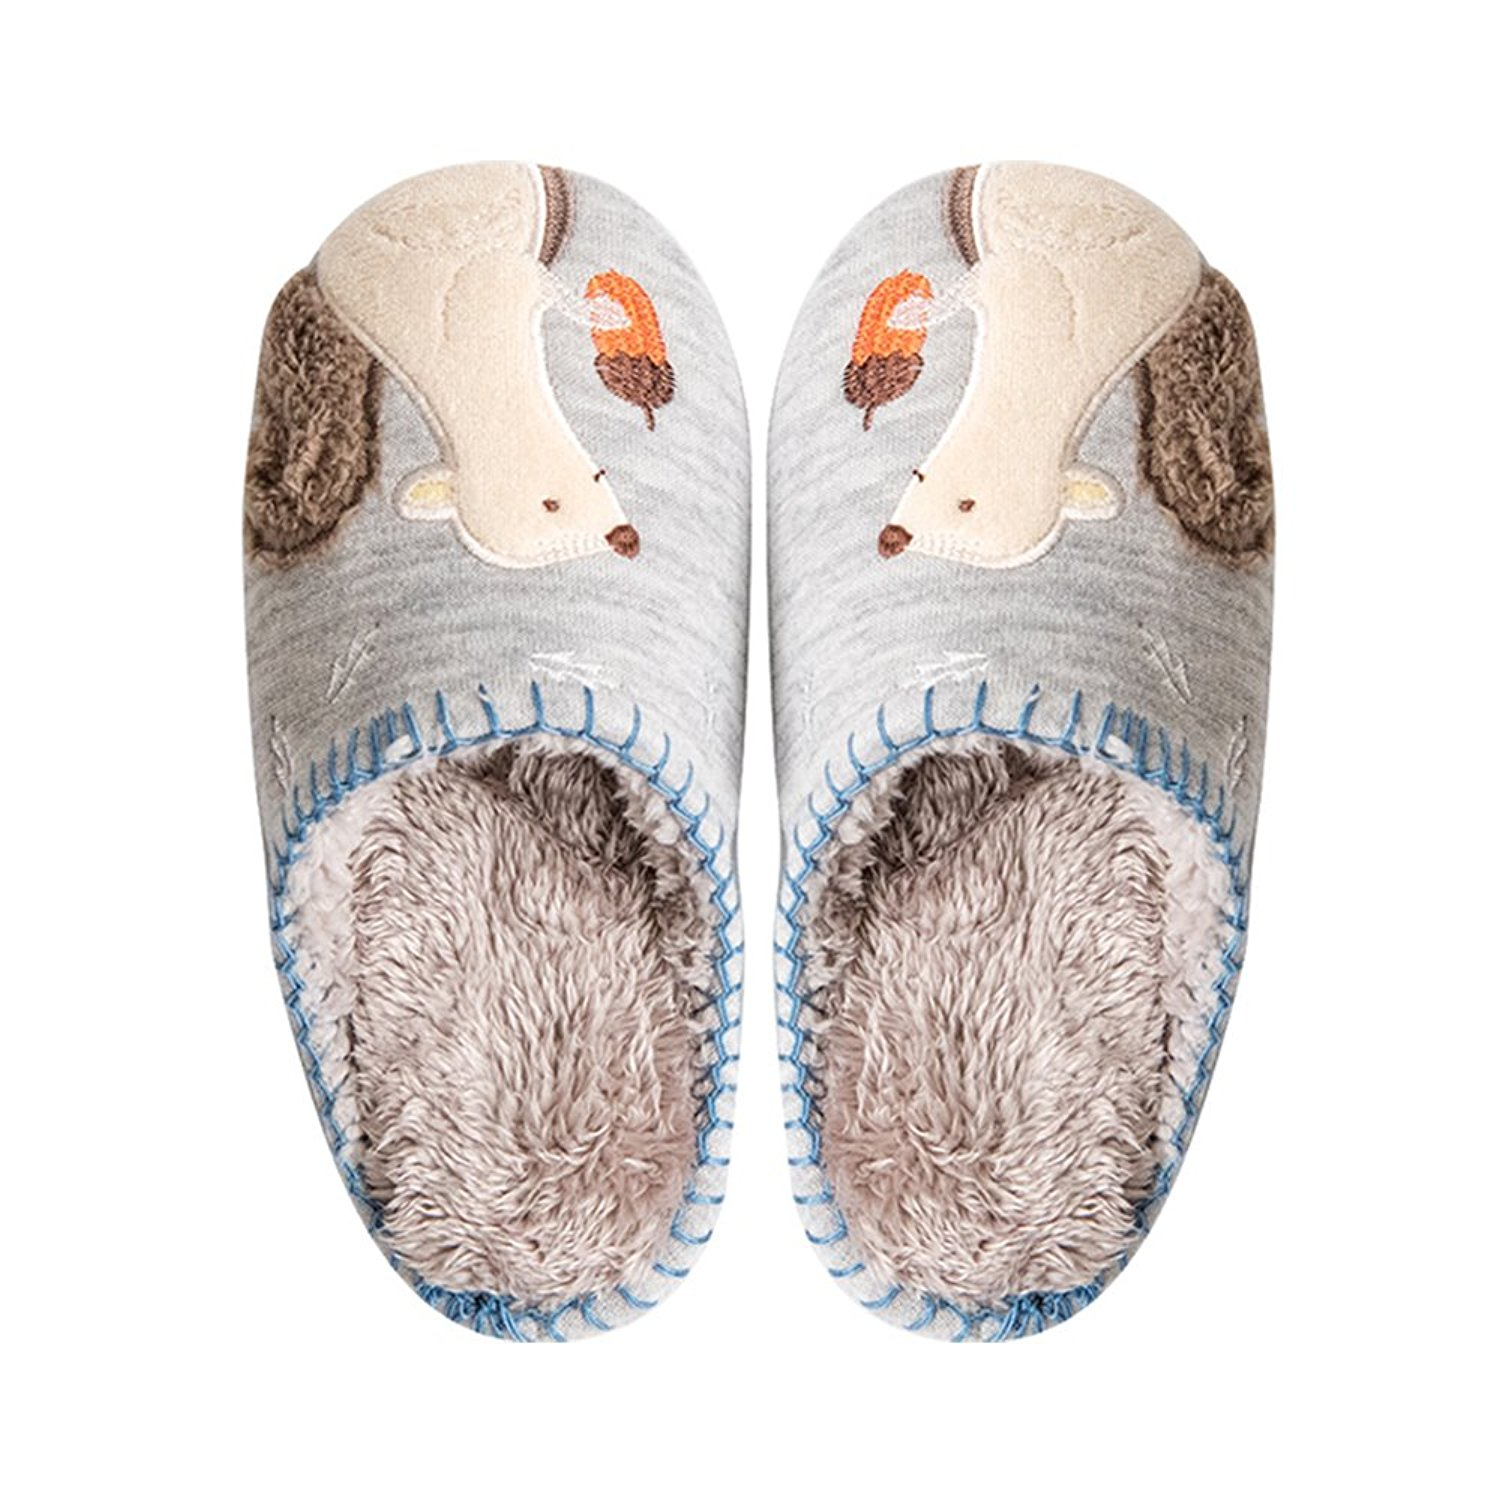 7129f4237f5 Get Quotations · Colias Wing Cuddly Squirrel Pattern Design Winter Soft  Cozy Warm Fleece Slippers House Slippers Warm Winter